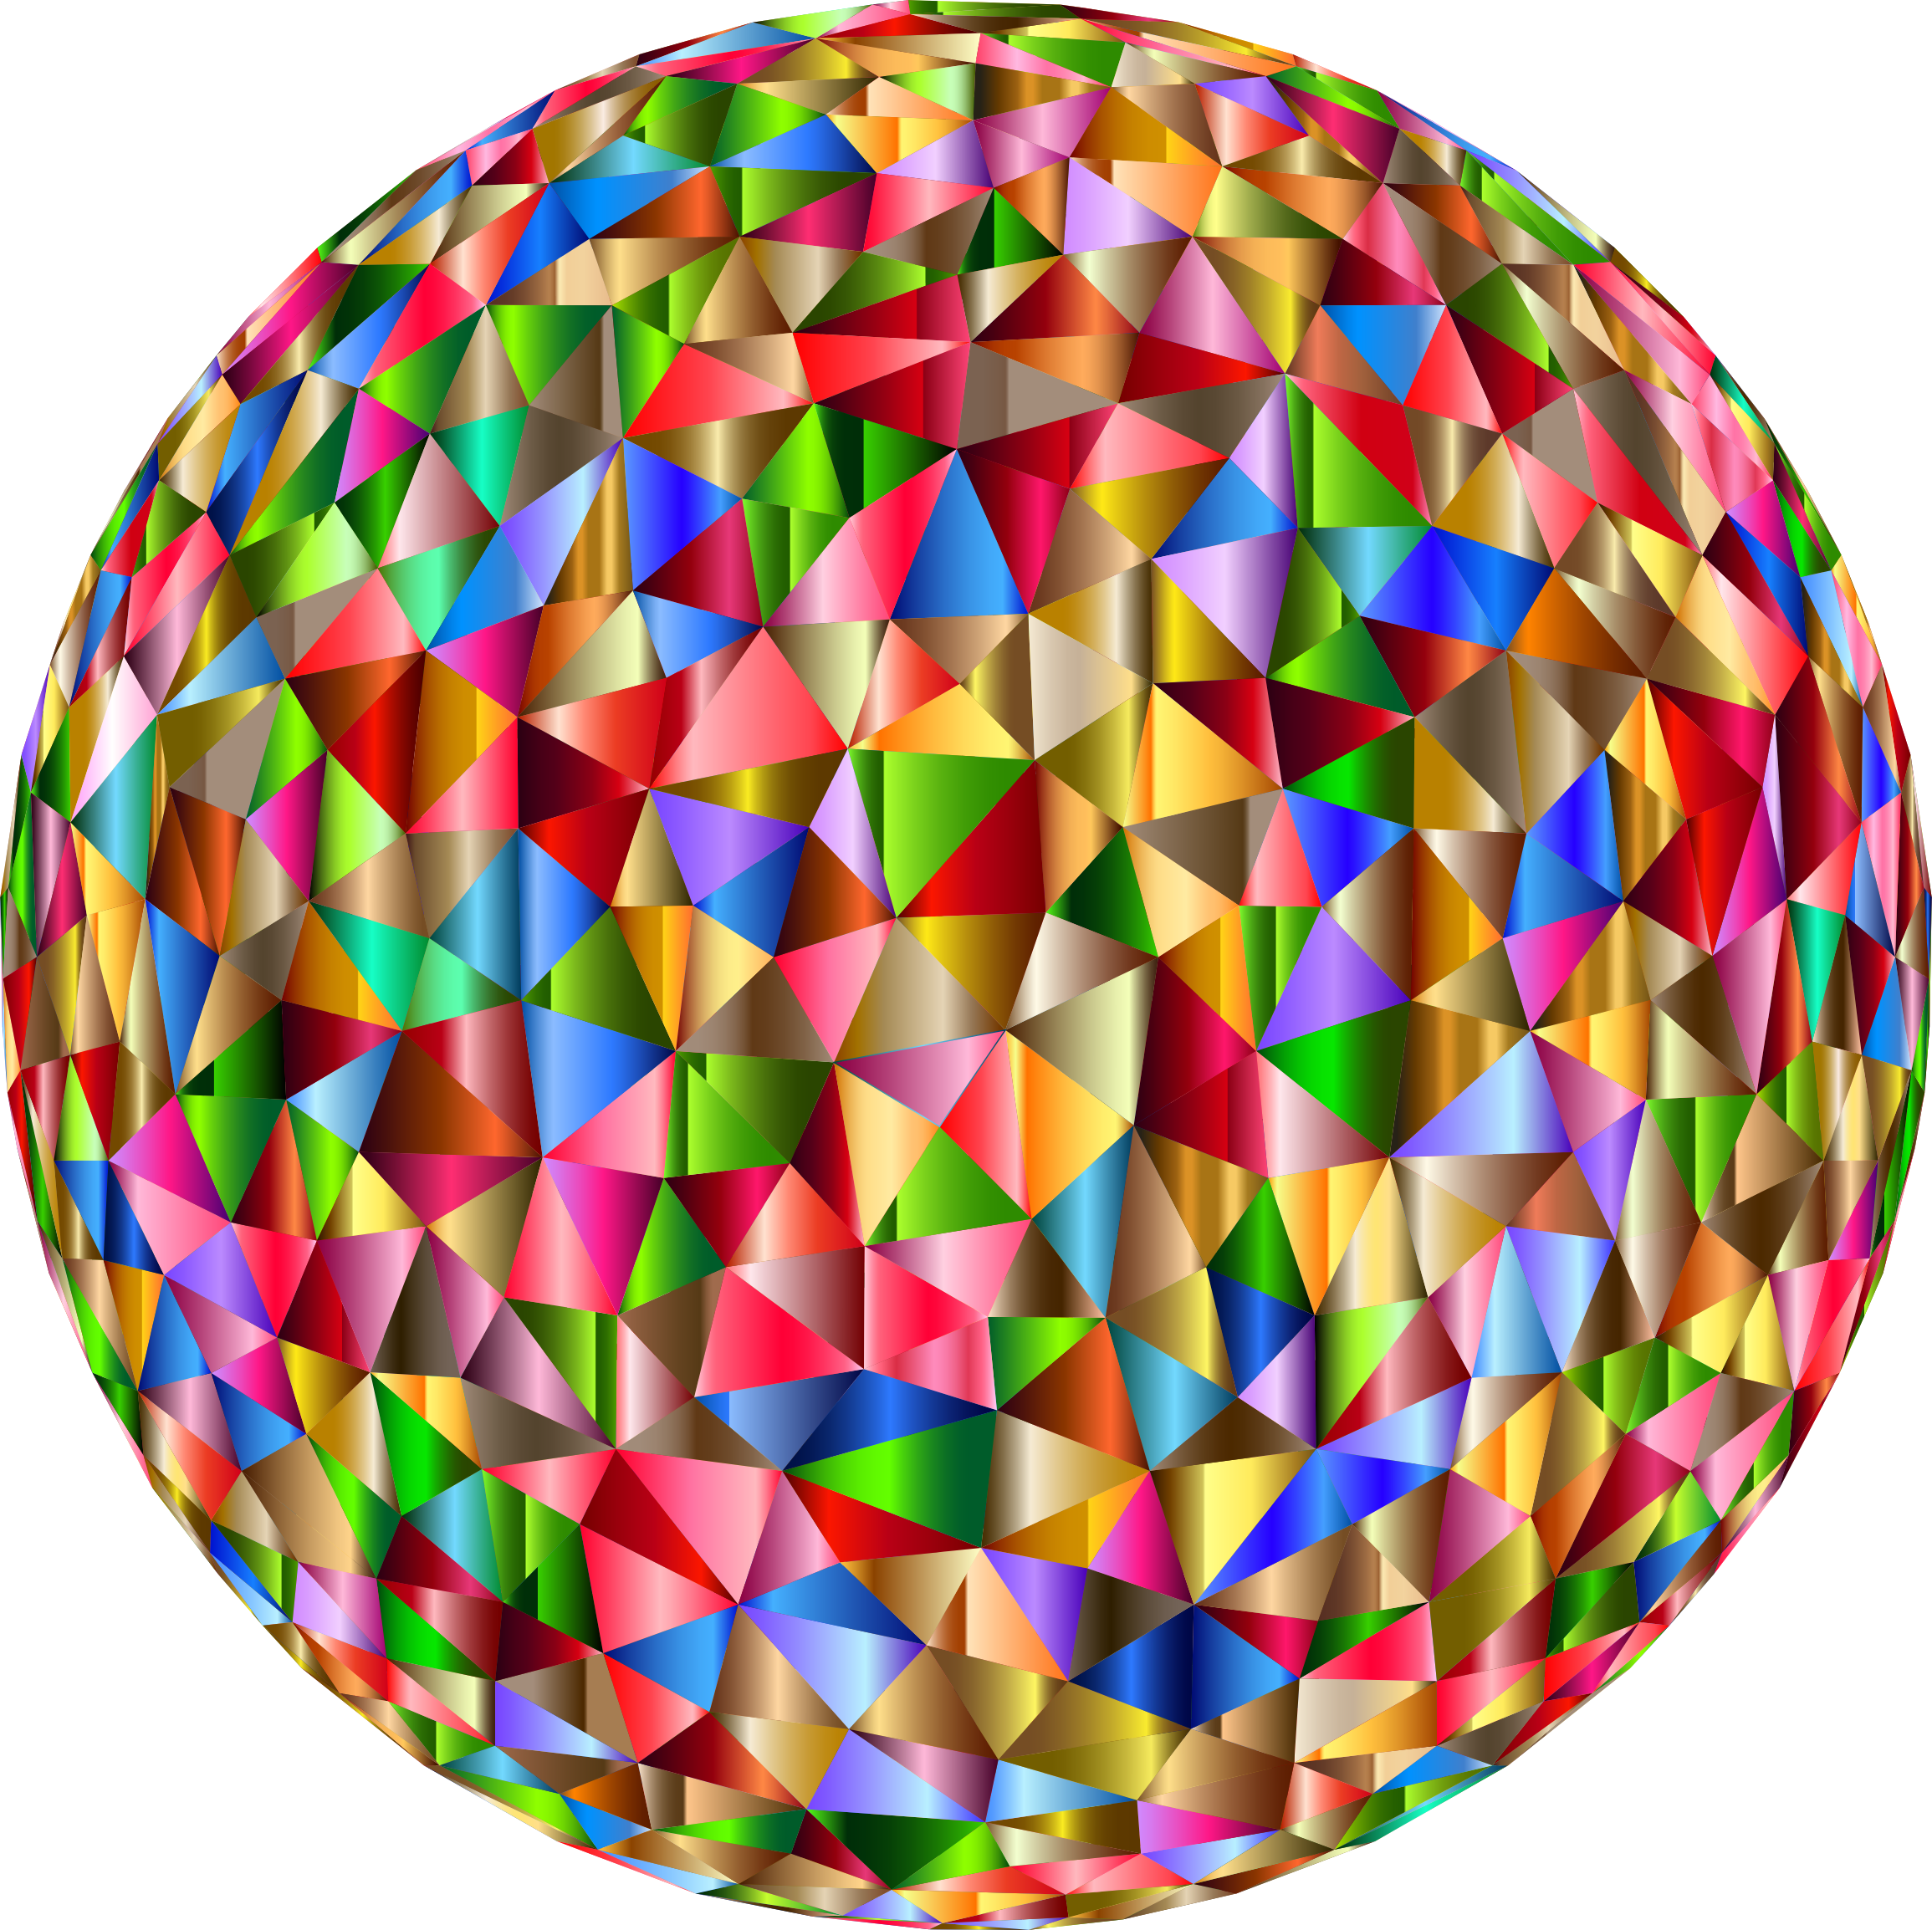 Prismatic Low Poly Sphere 6 by GDJ